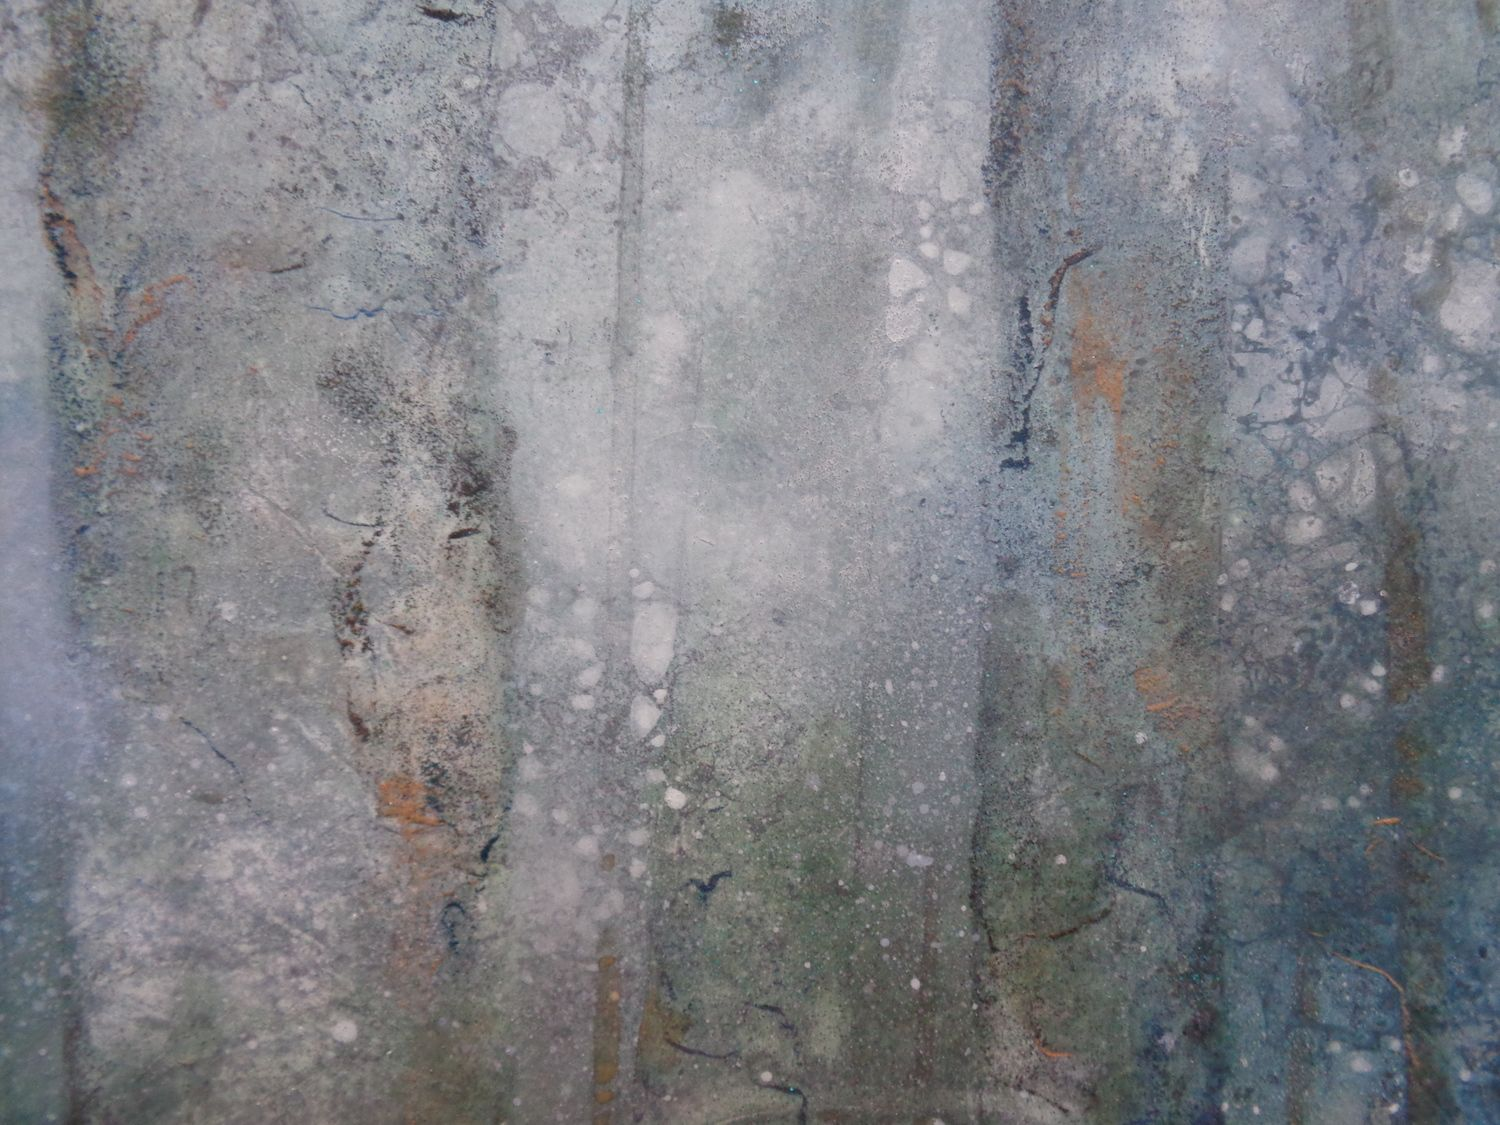 Plenitude II,Chen Yiching,Contemporary painting, detail 1